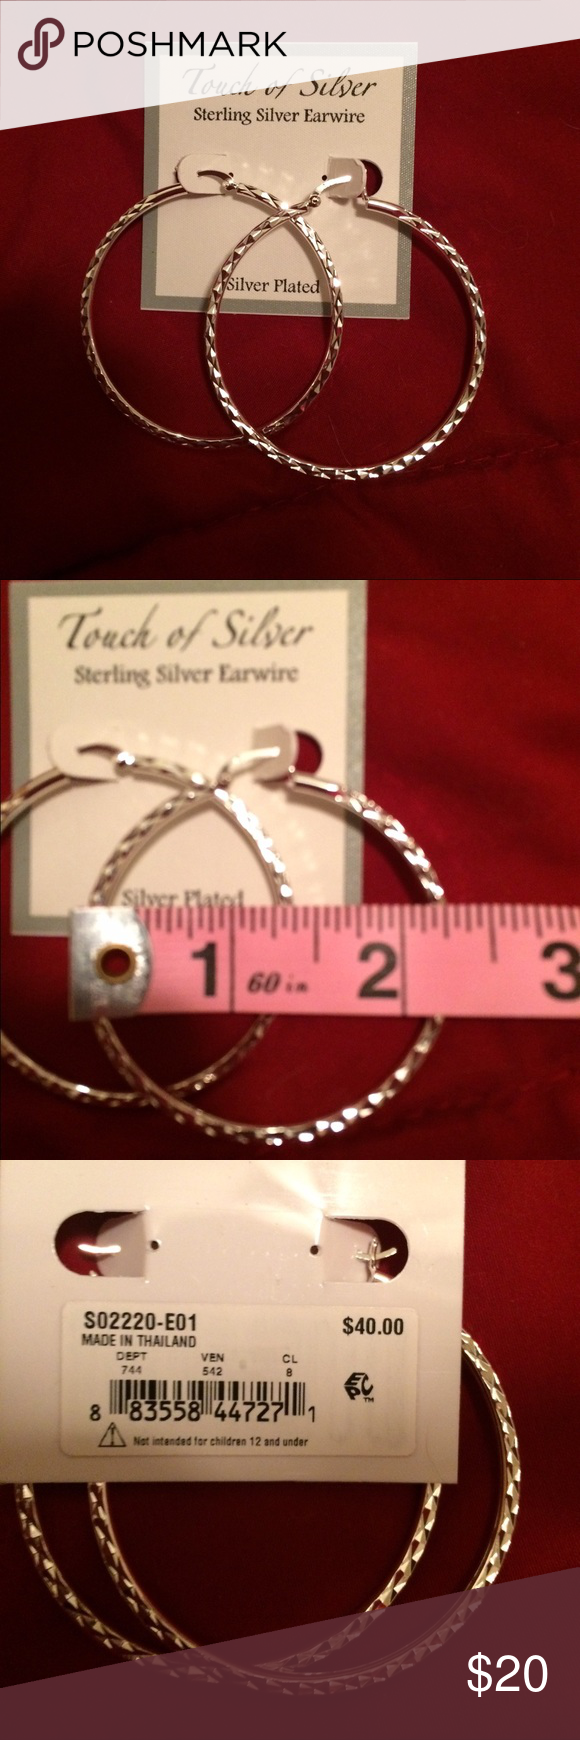 New with Tags Silver Plated Earrings New with tags silver plated earrings from Macy's. Beautiful etching gives them a sparkling effect.  Simple but beautiful. Macy's Jewelry Earrings